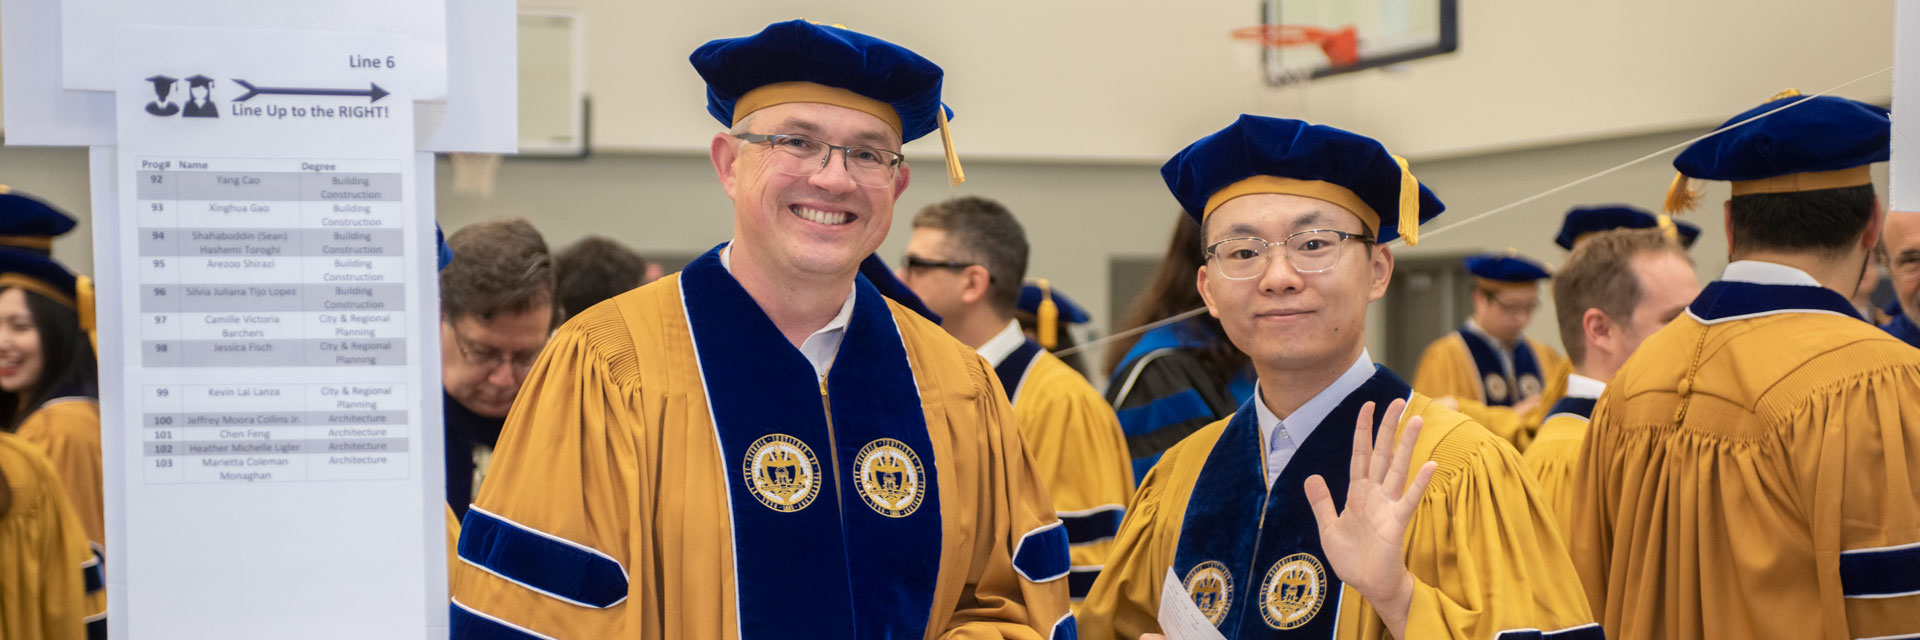 Two Ph.D. graduates standing in line at commencement ceremony. One waving to the camera.